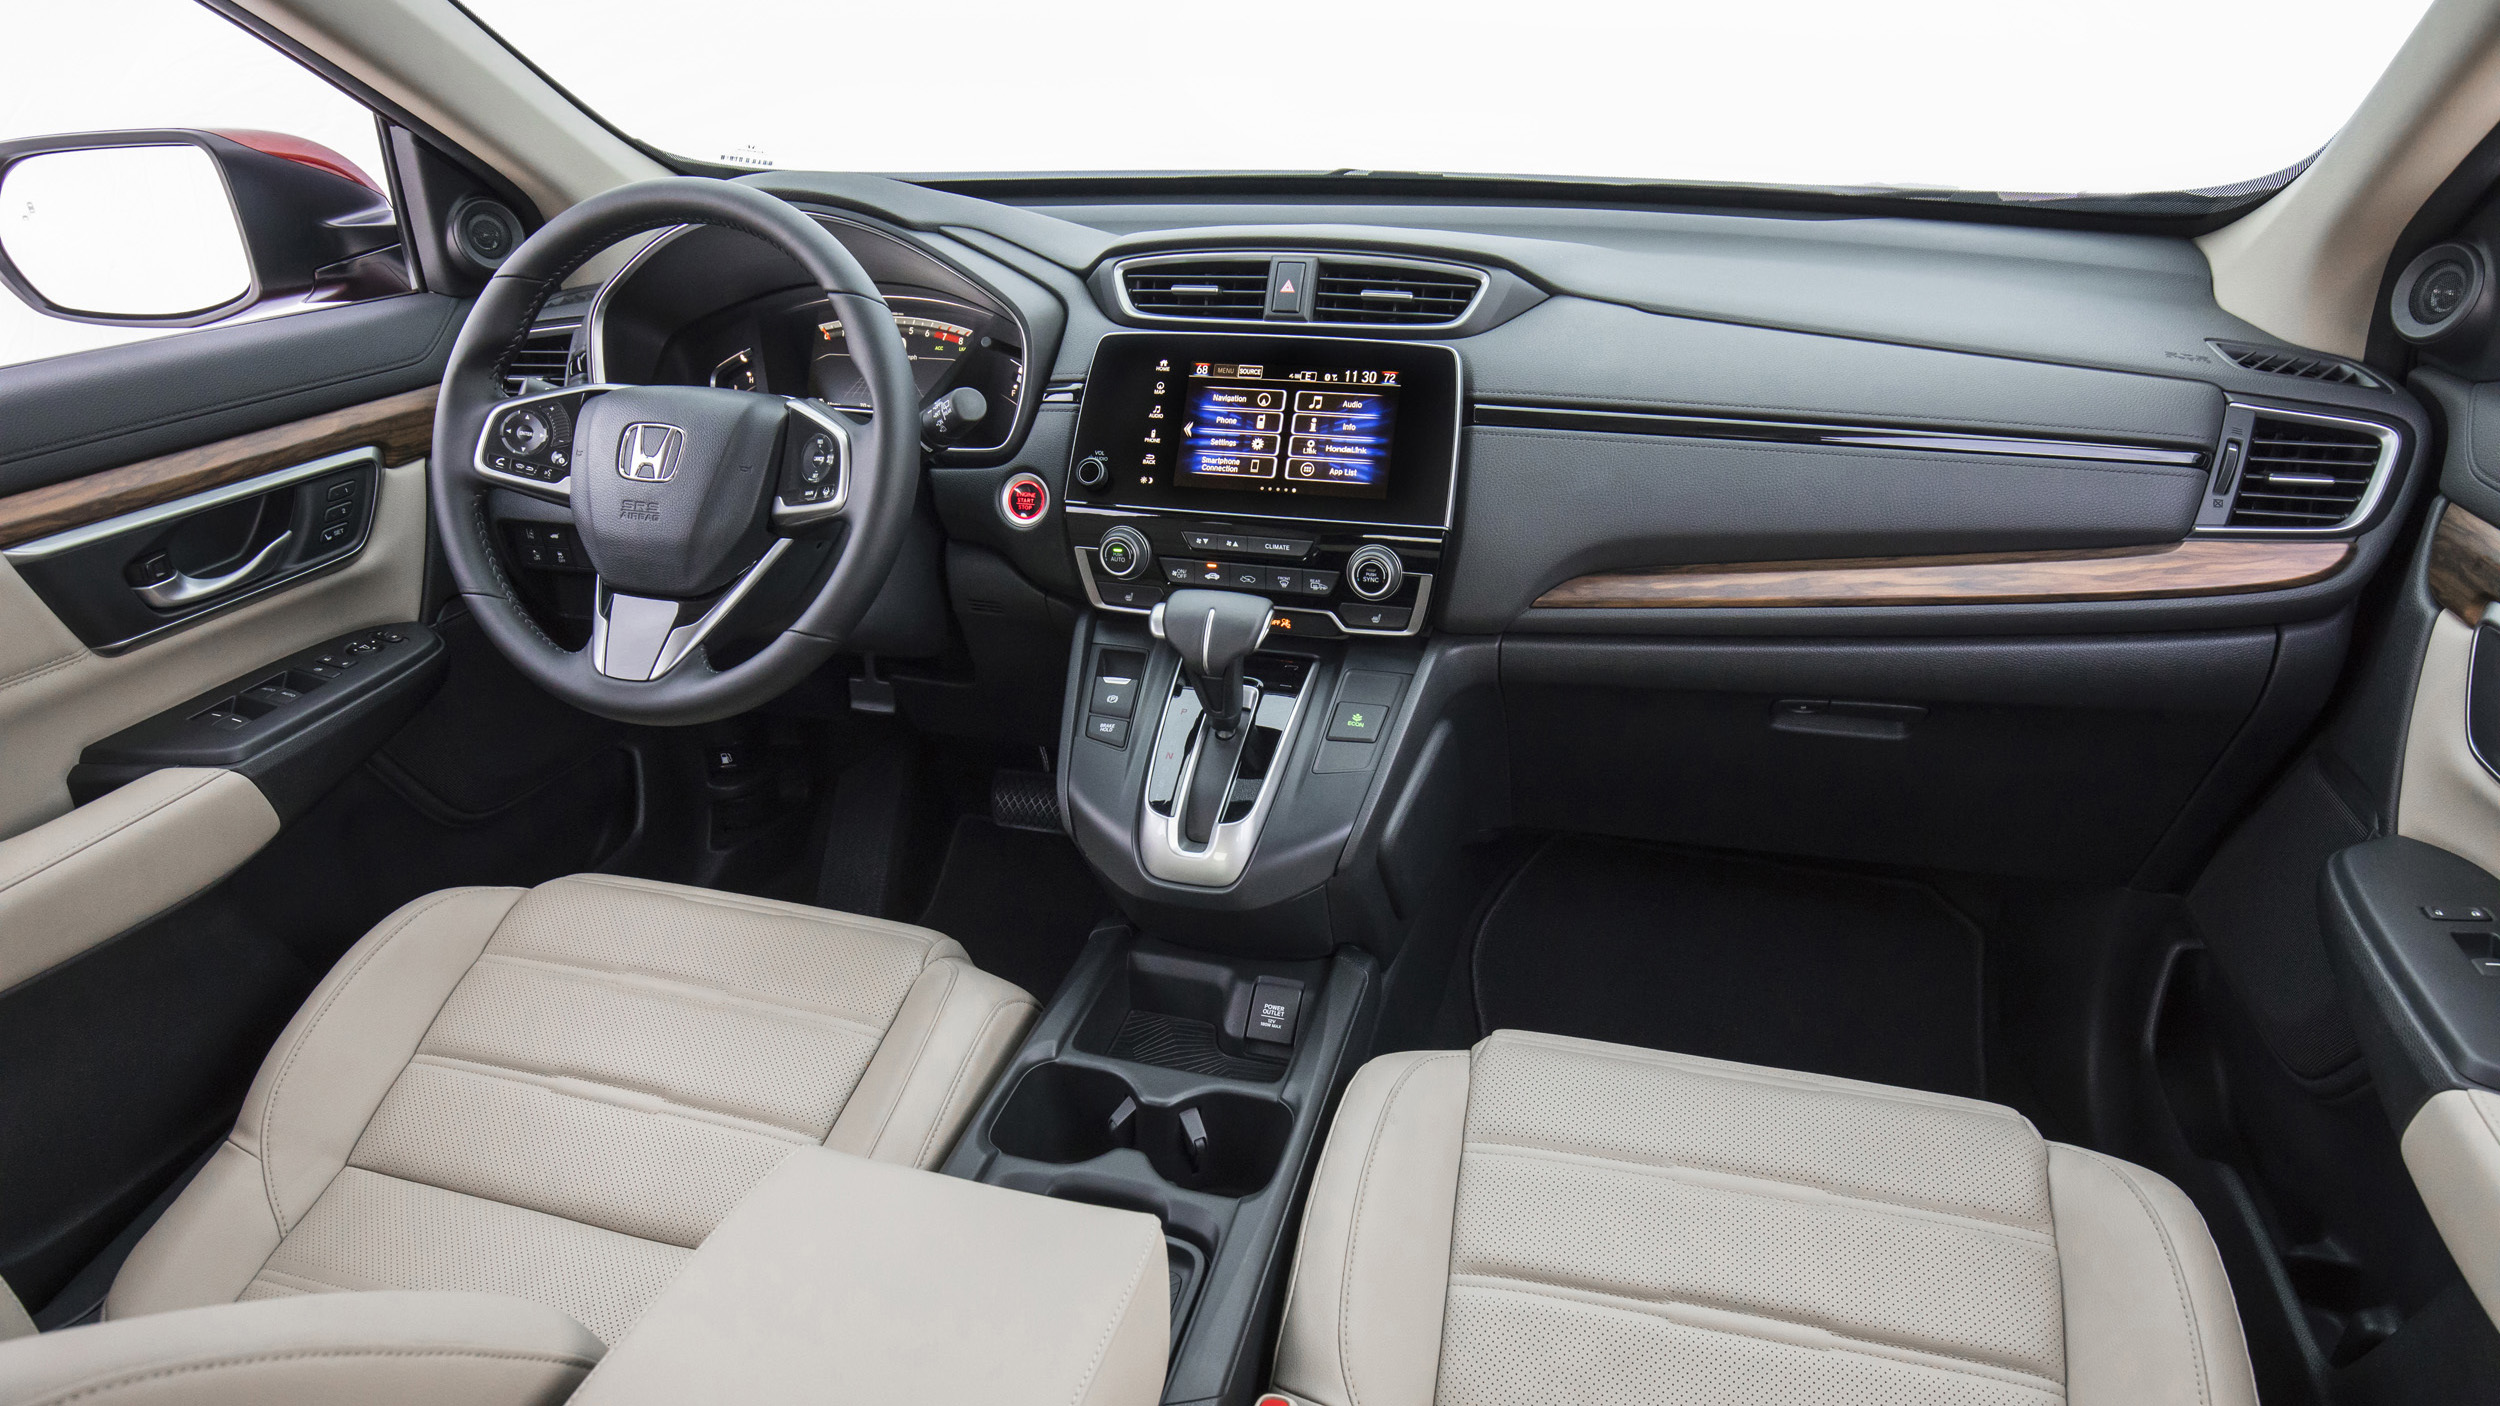 2019 Honda CR-V Buying Guide and Review | Price, specs, features and photos